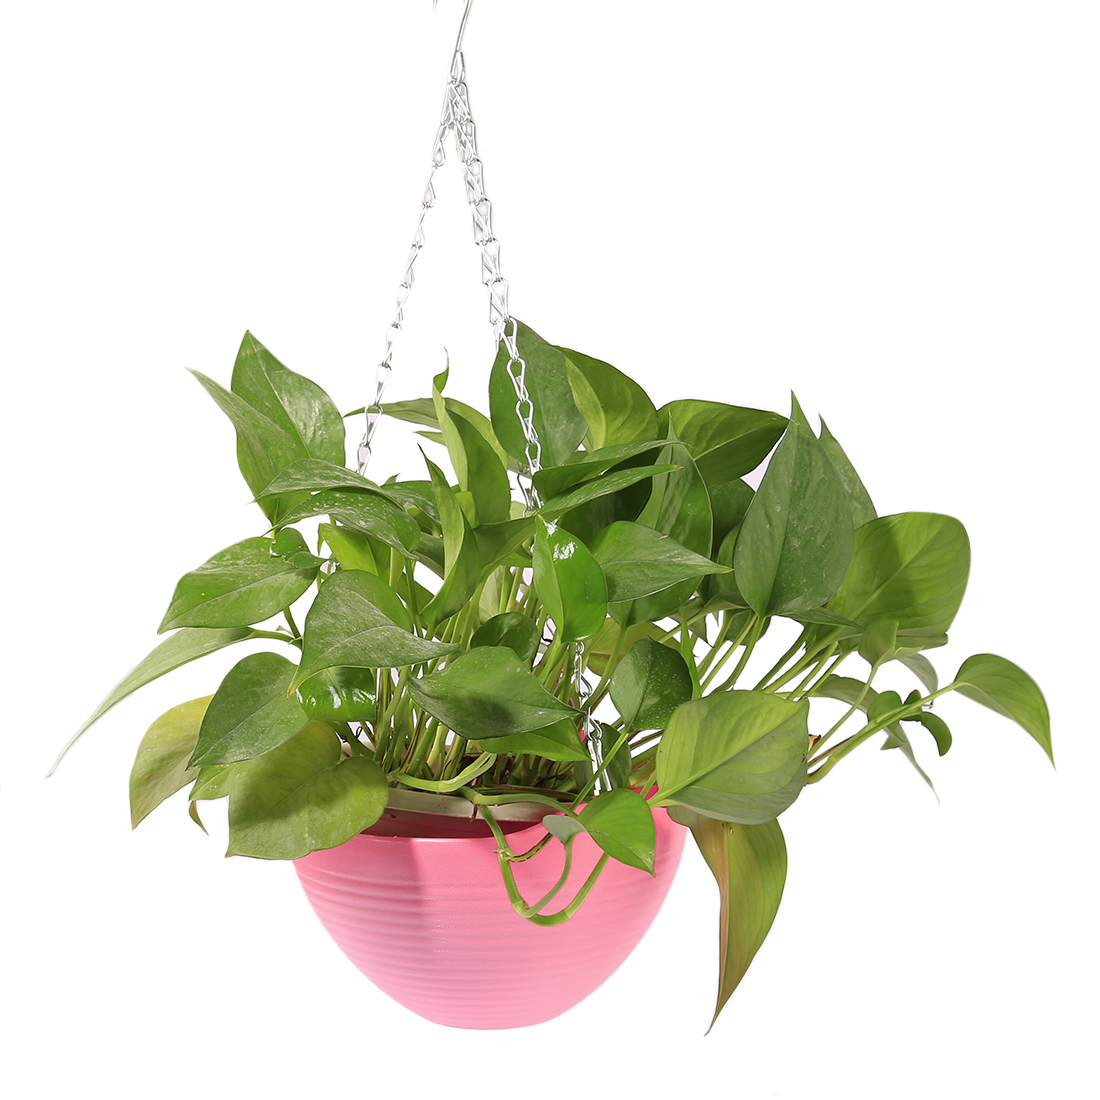 VICTMAX Hanging Flower Plant Pot Chain Plastic Basket Planter Holder Patio Home/Office Decoration Pink Blue Hot Sale ...